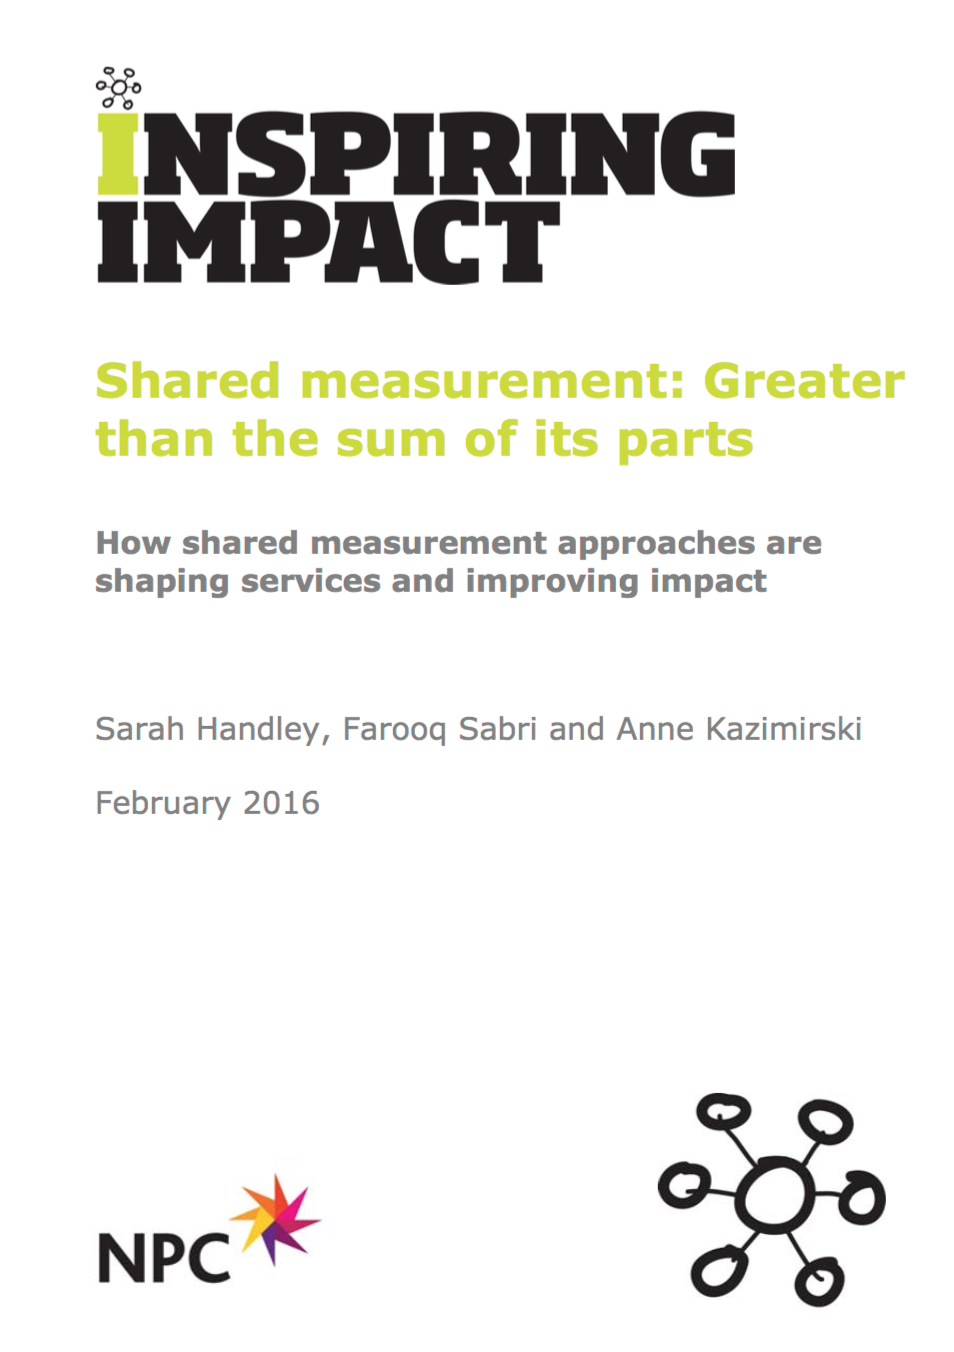 Shared Measurement: Greater than the Sum of its parts